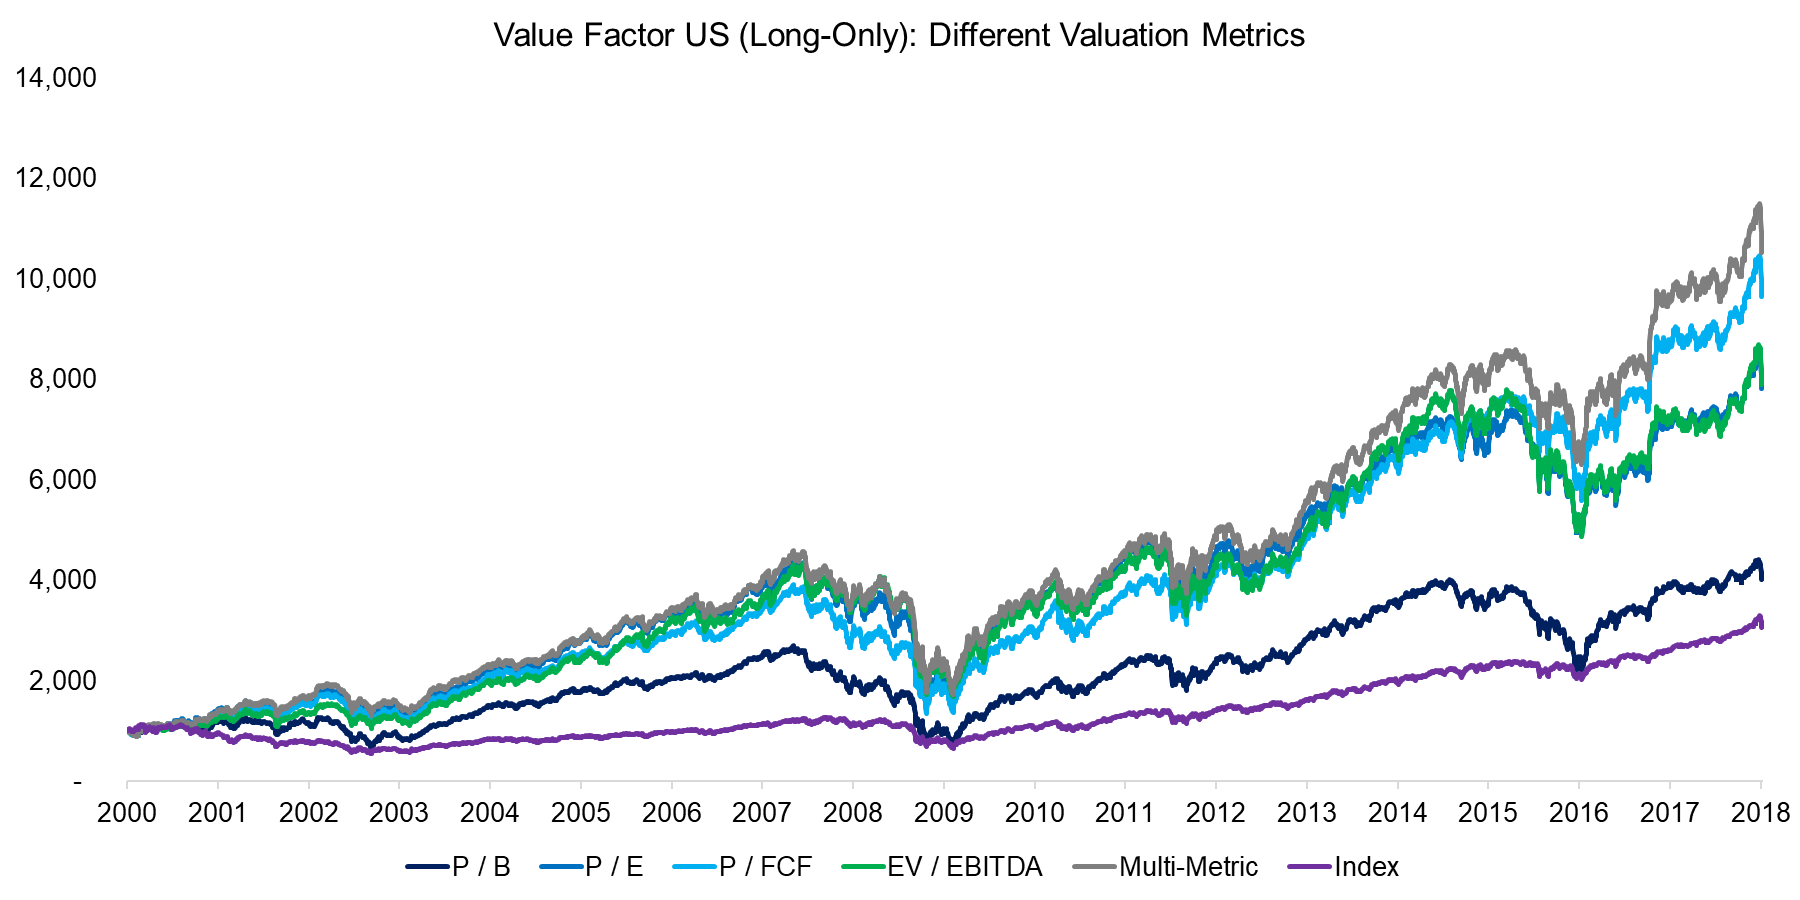 Value Factor Valuation Metrics